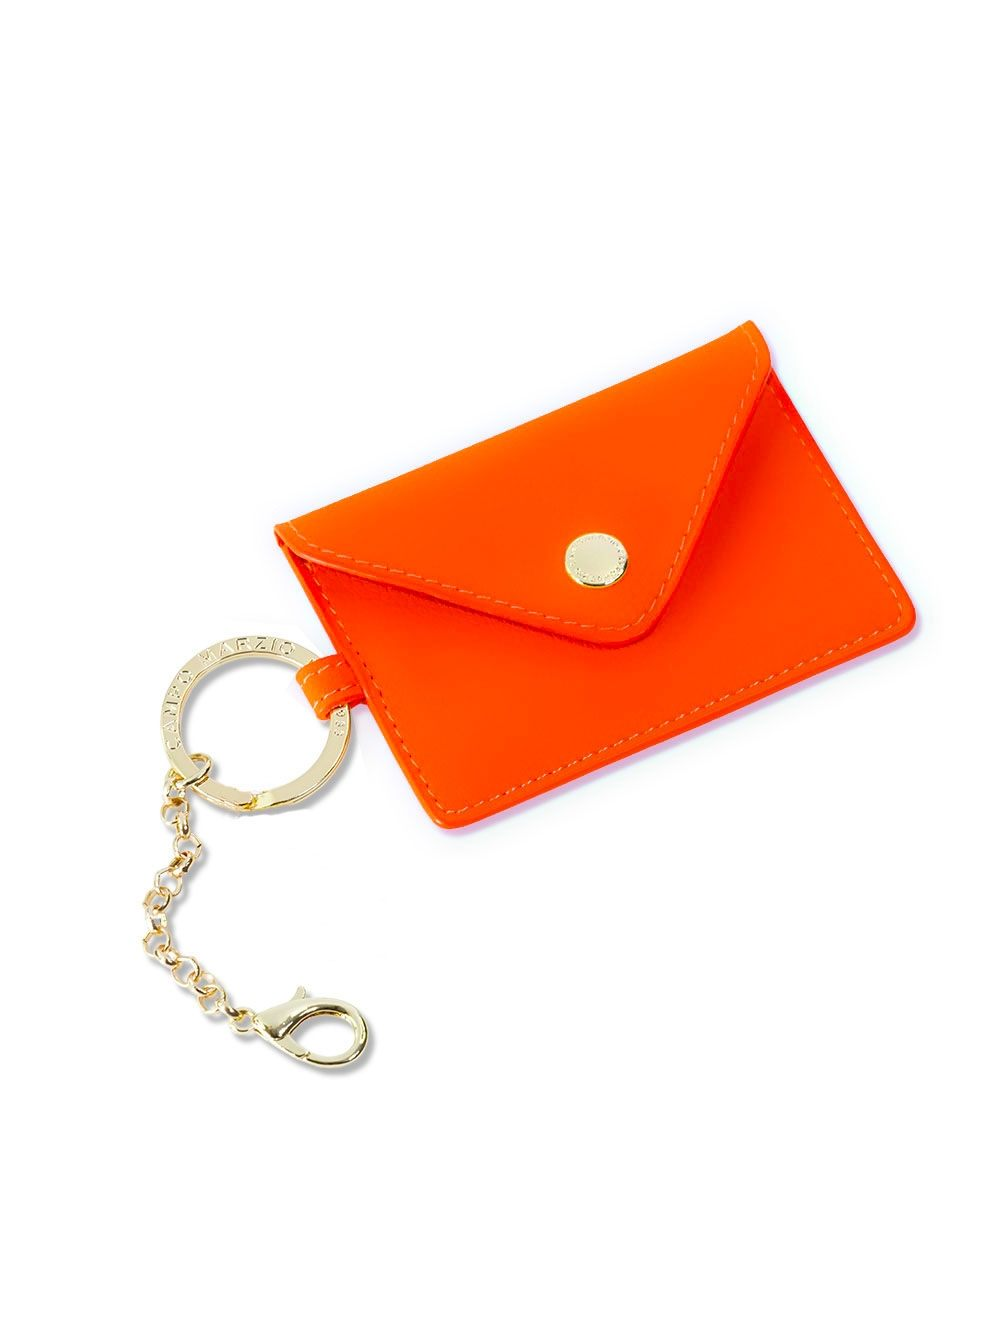 Lev Business Card Holder